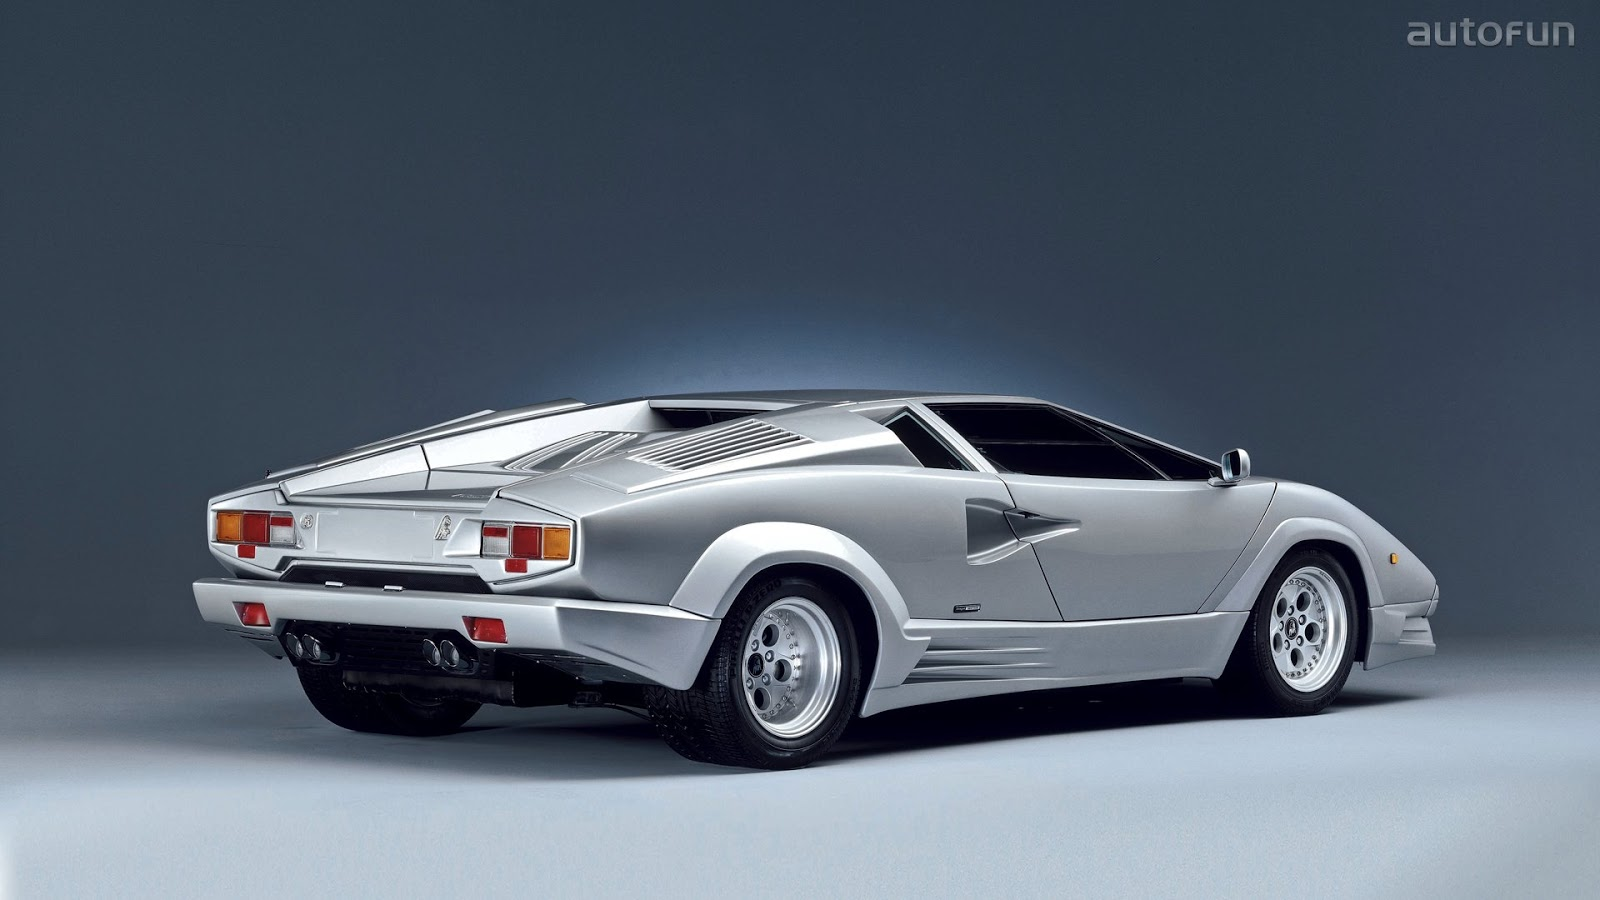 Luxury Lamborghini Cars: Lamborghini Countach Wallpaper